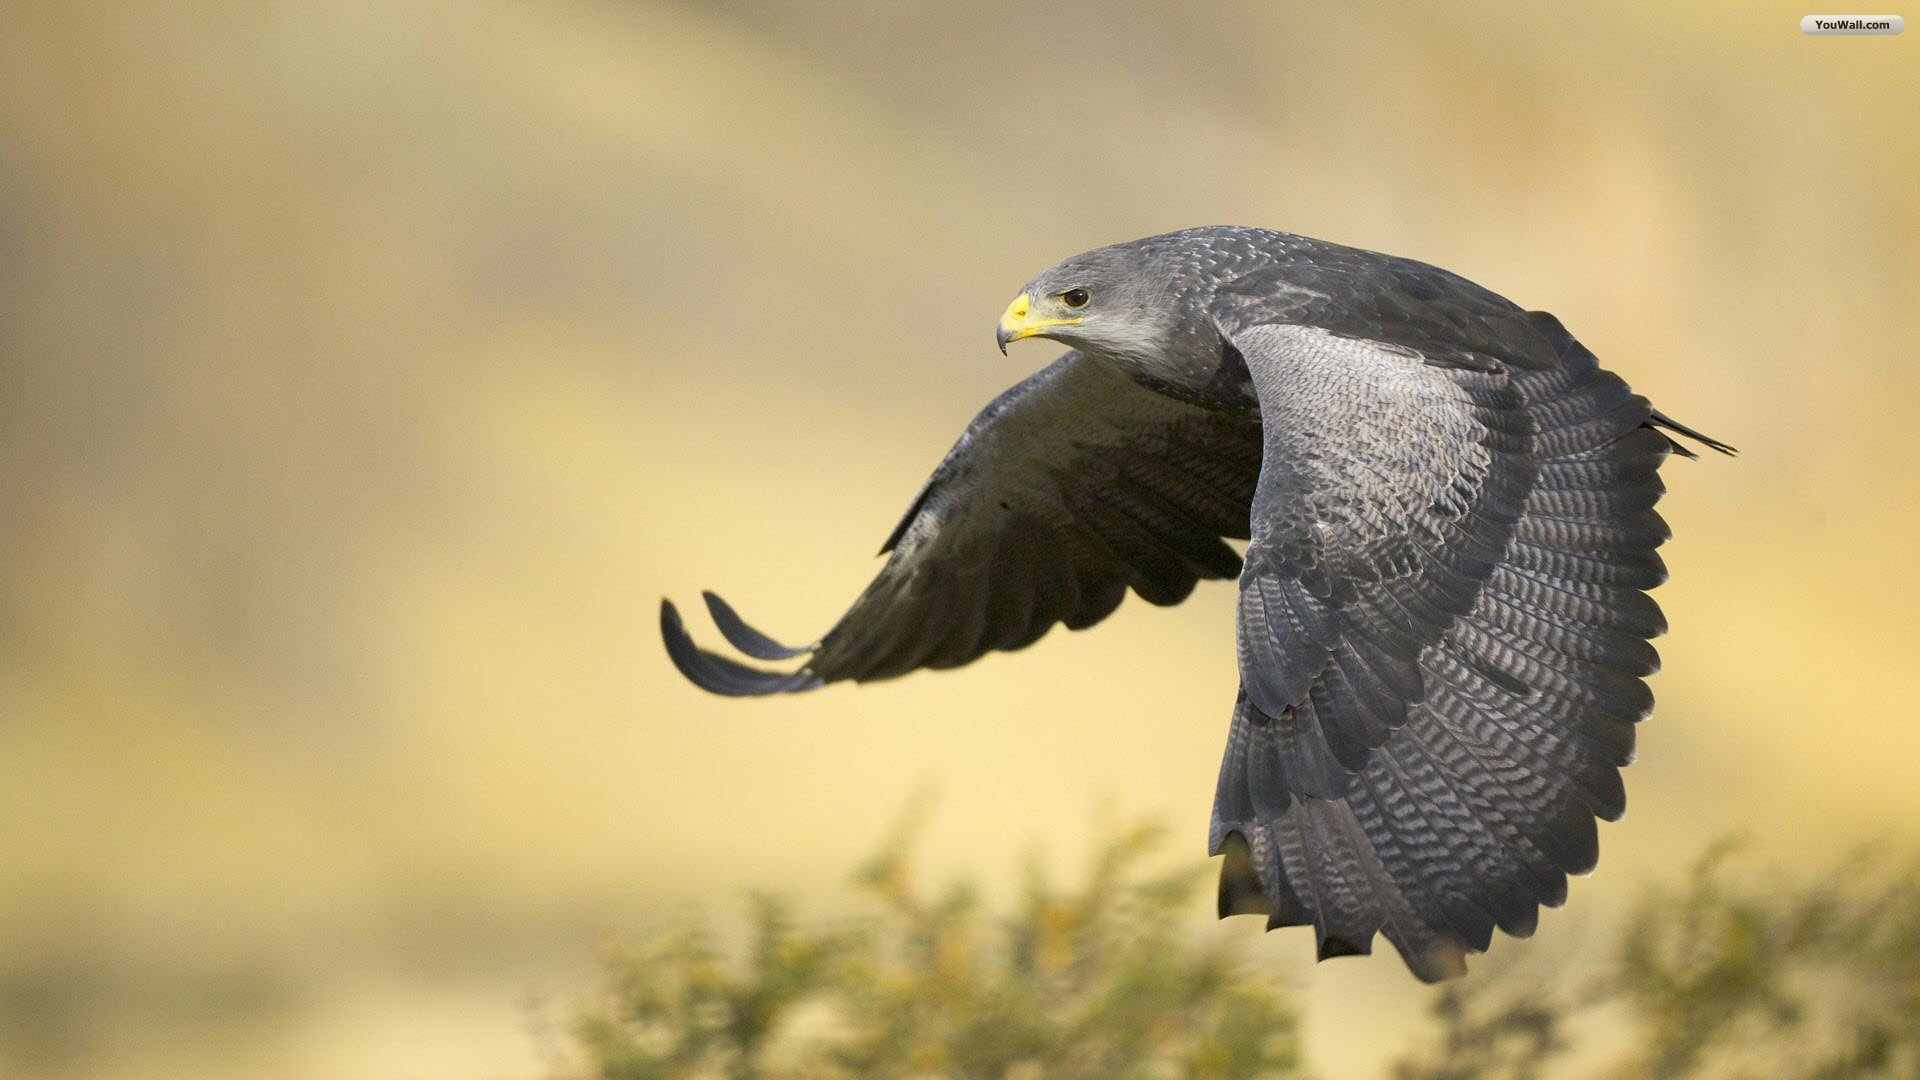 Falcon High Resolution Wallpapers: High Quality Falcon Wallpapers